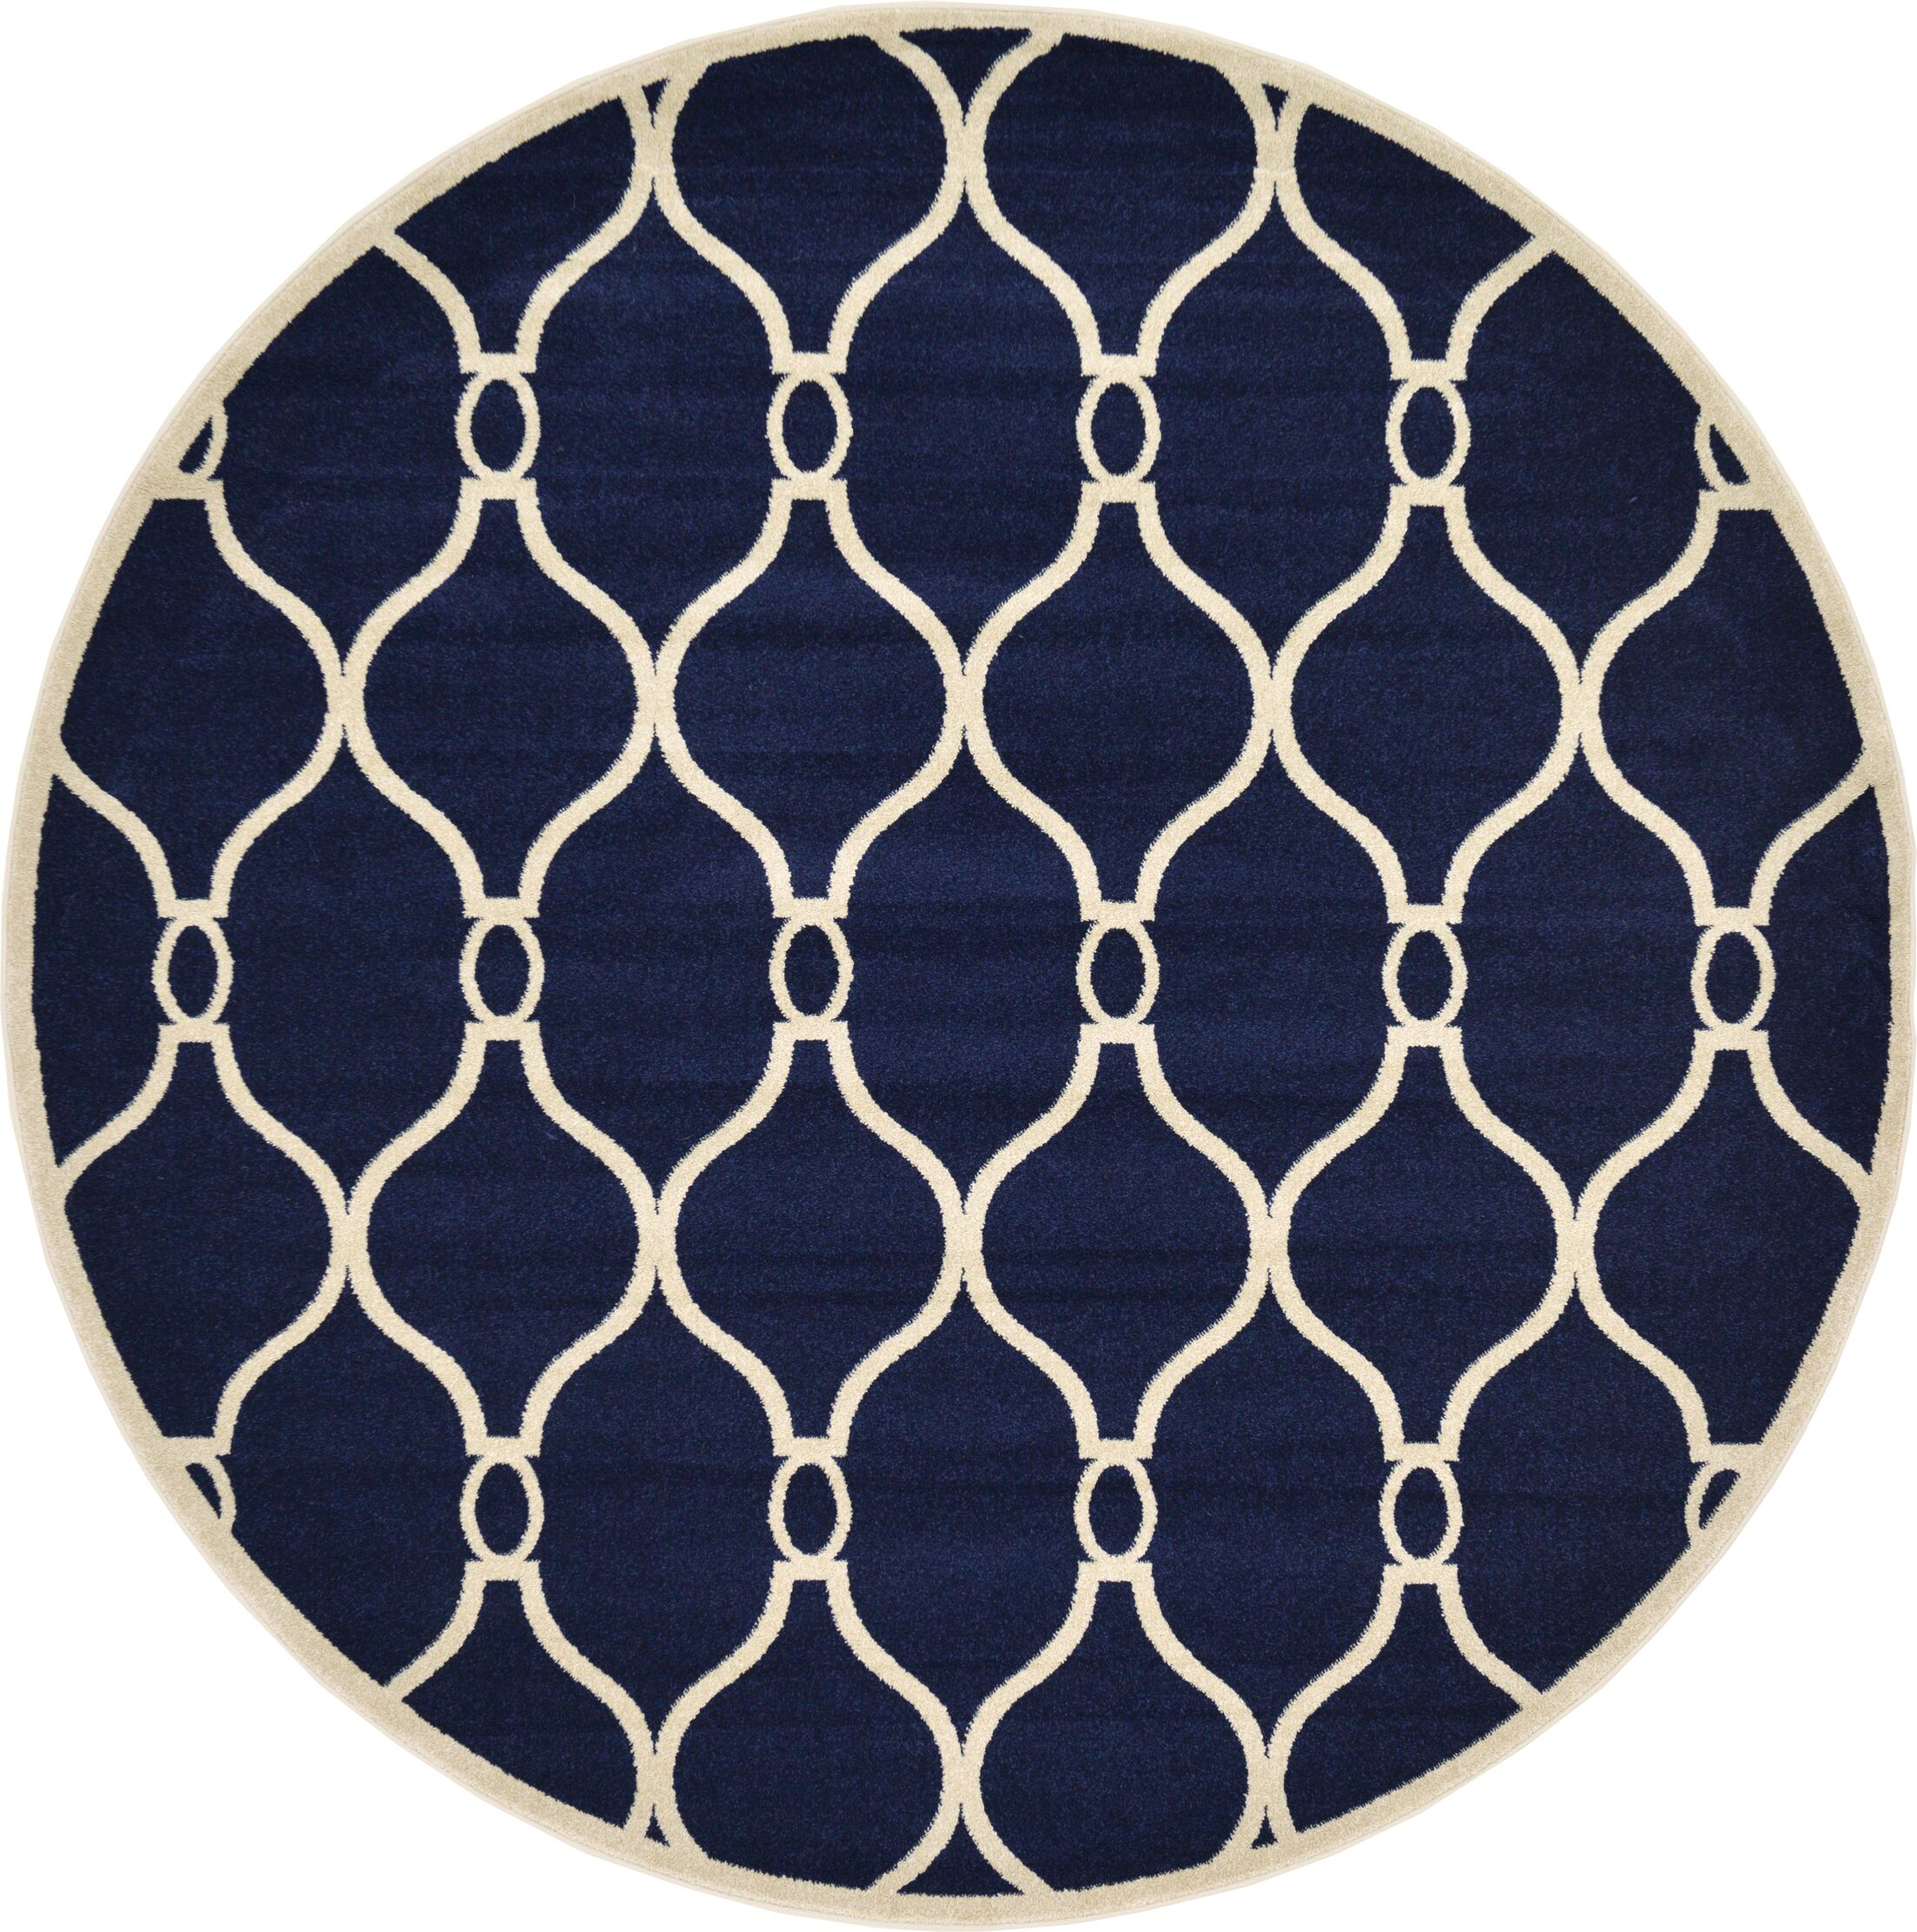 Molly Navy Blue Area Rug Rug Size: Round 8'